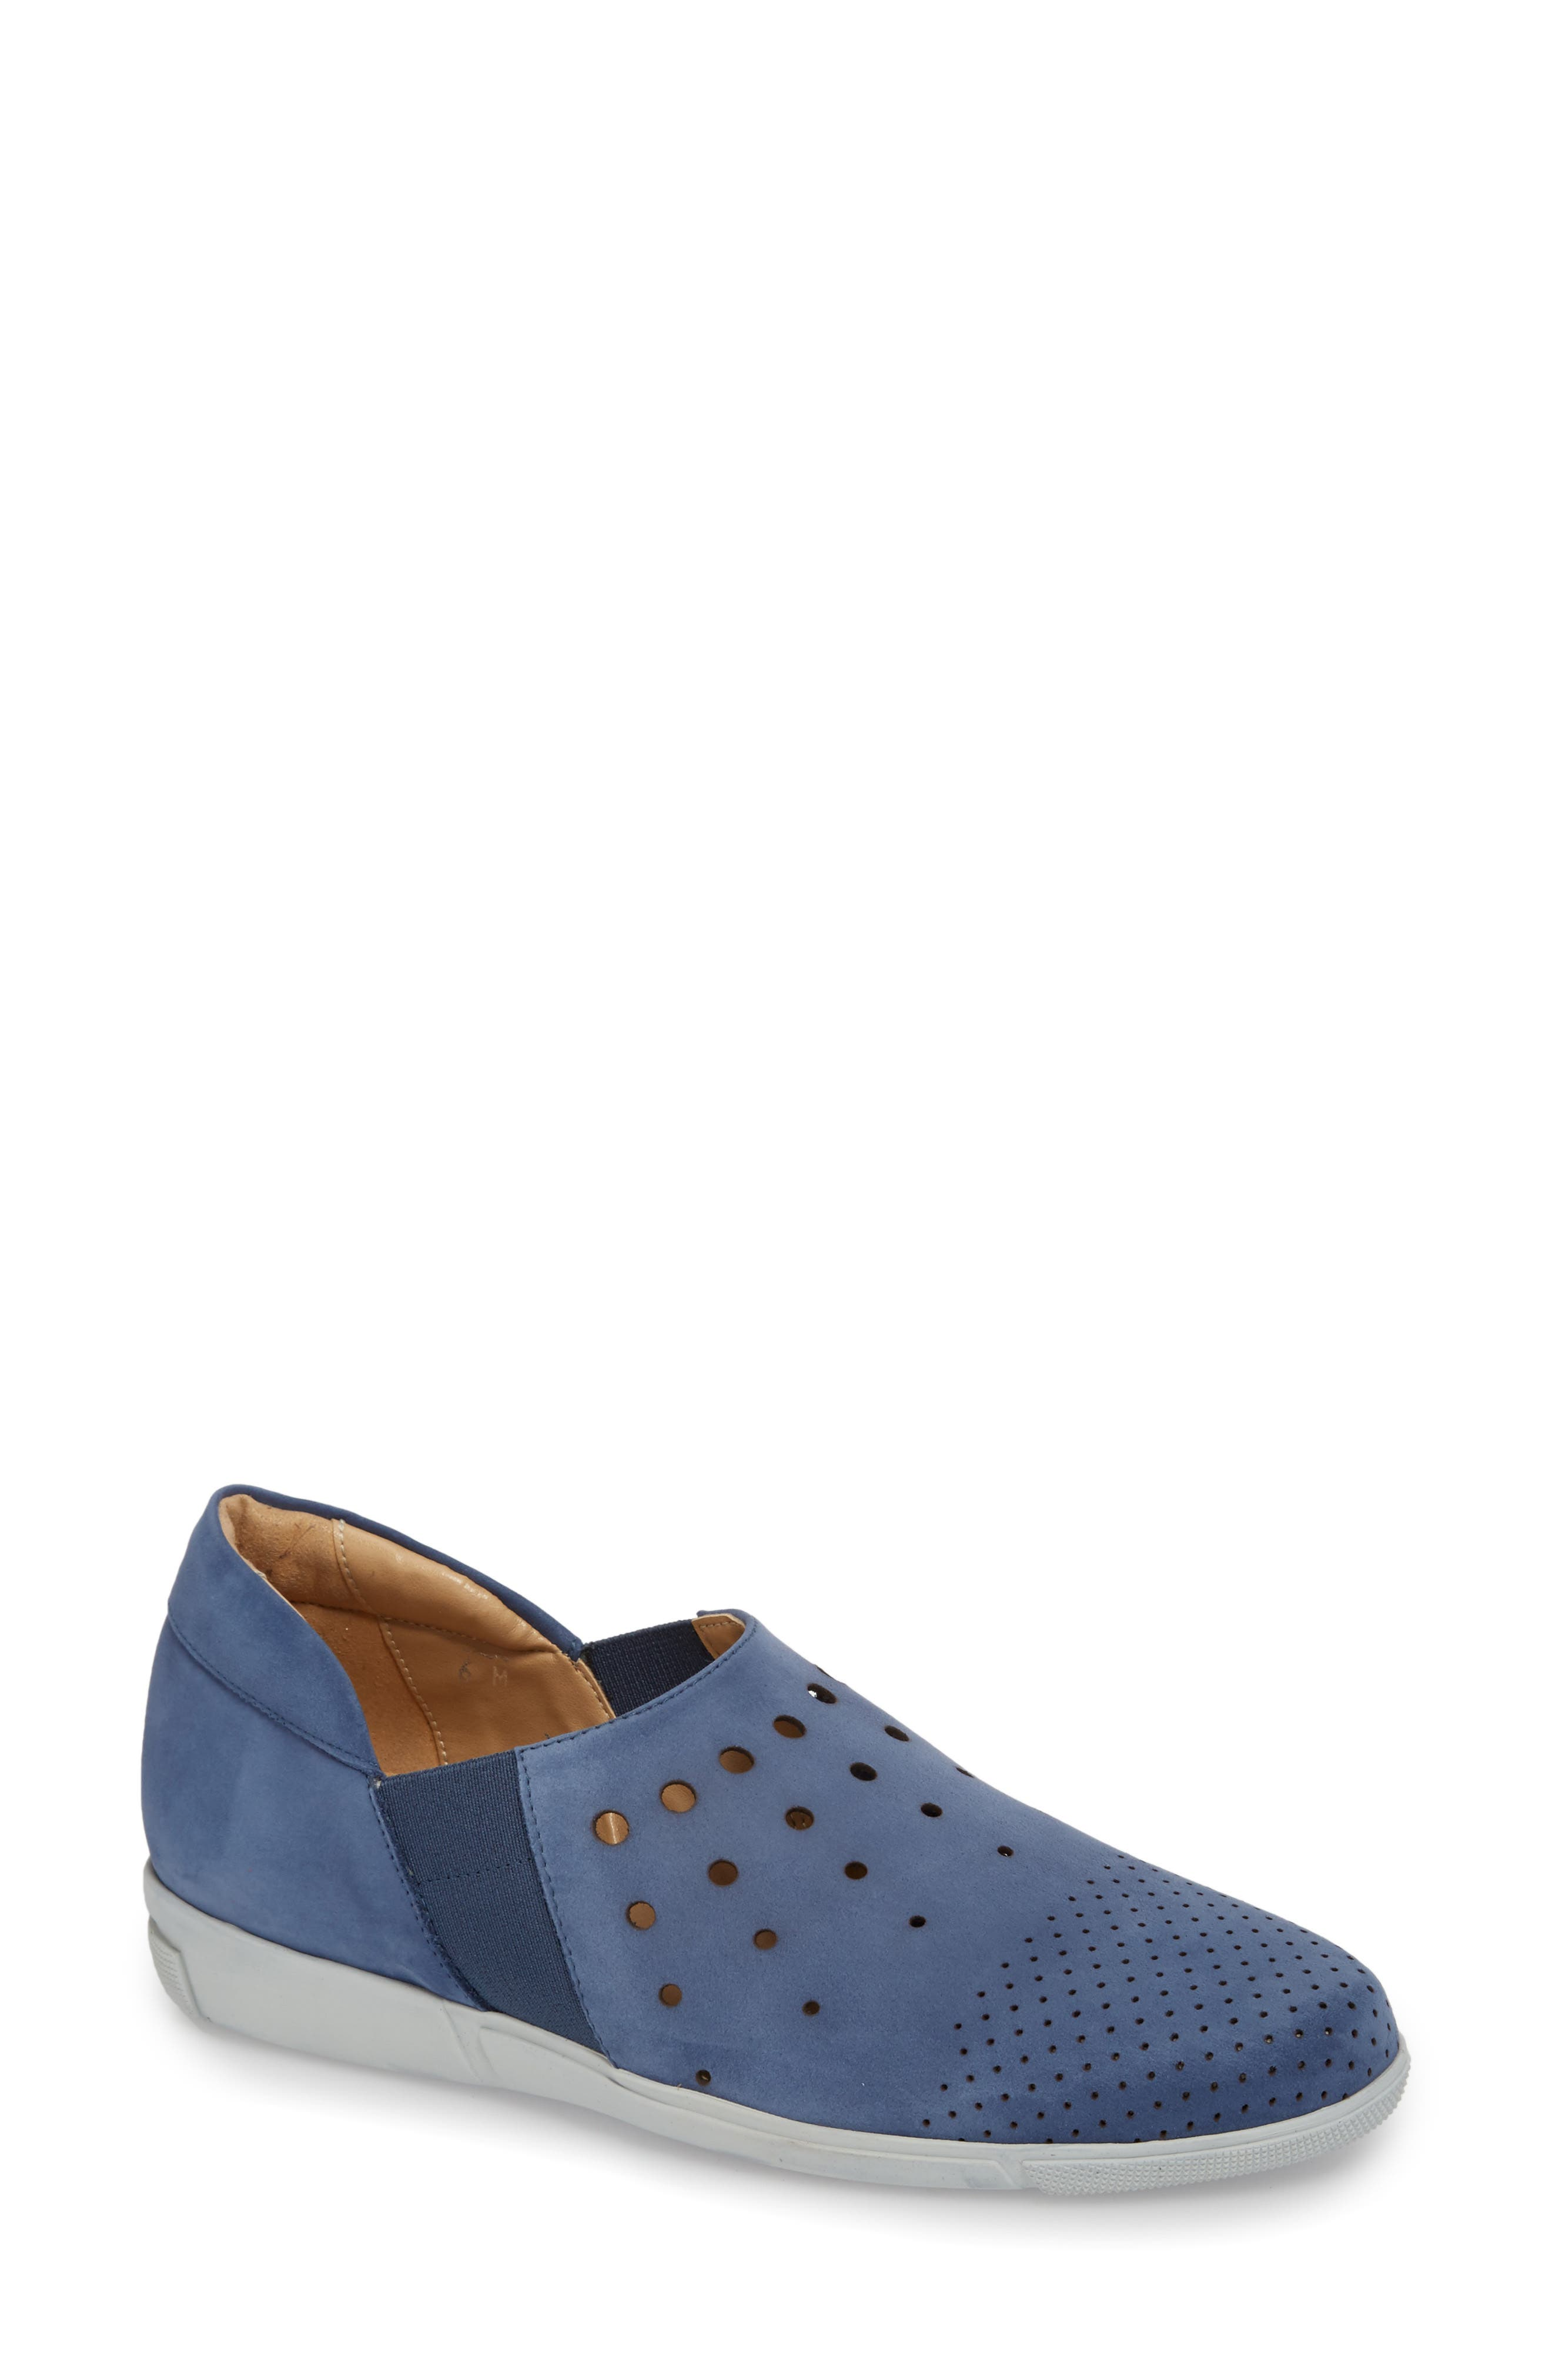 Ditty Perforated Slip-On,                             Main thumbnail 1, color,                             Jeans Soft Nubuck